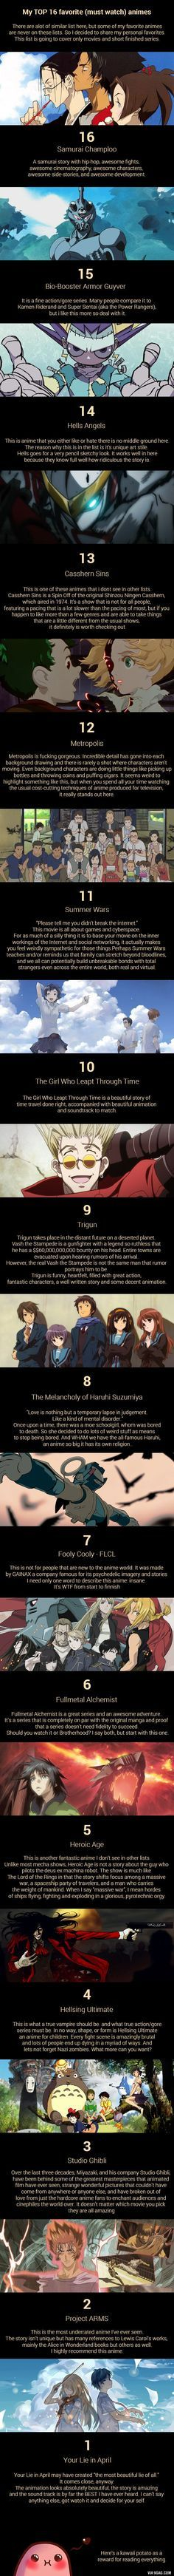 My top 16 mustwatch anime list. With short reviews